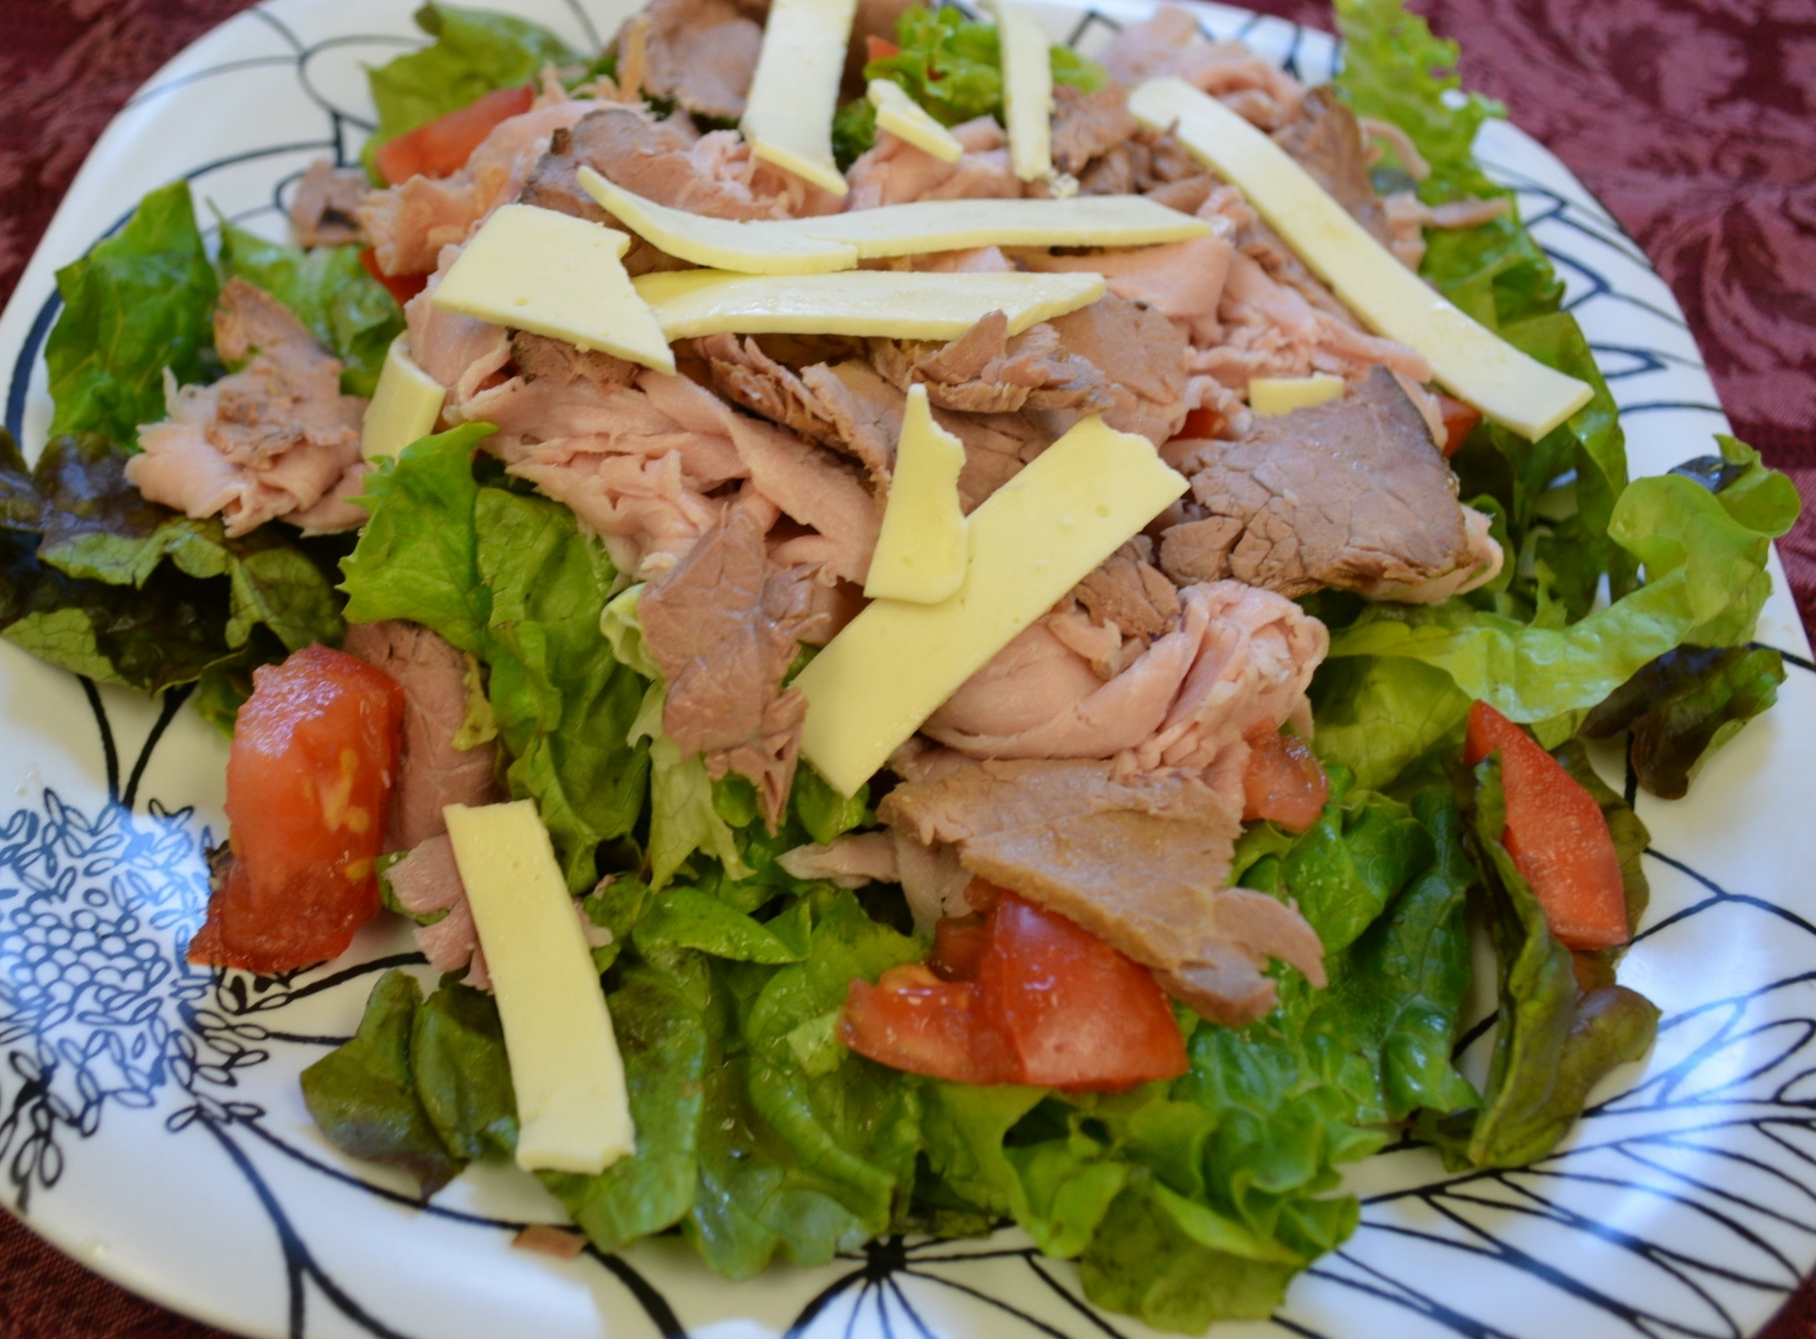 Chef - Fresh lettuce, Tomato, Ham, and Roast Beef, topped off with provolone cheeseand your choice of dressing